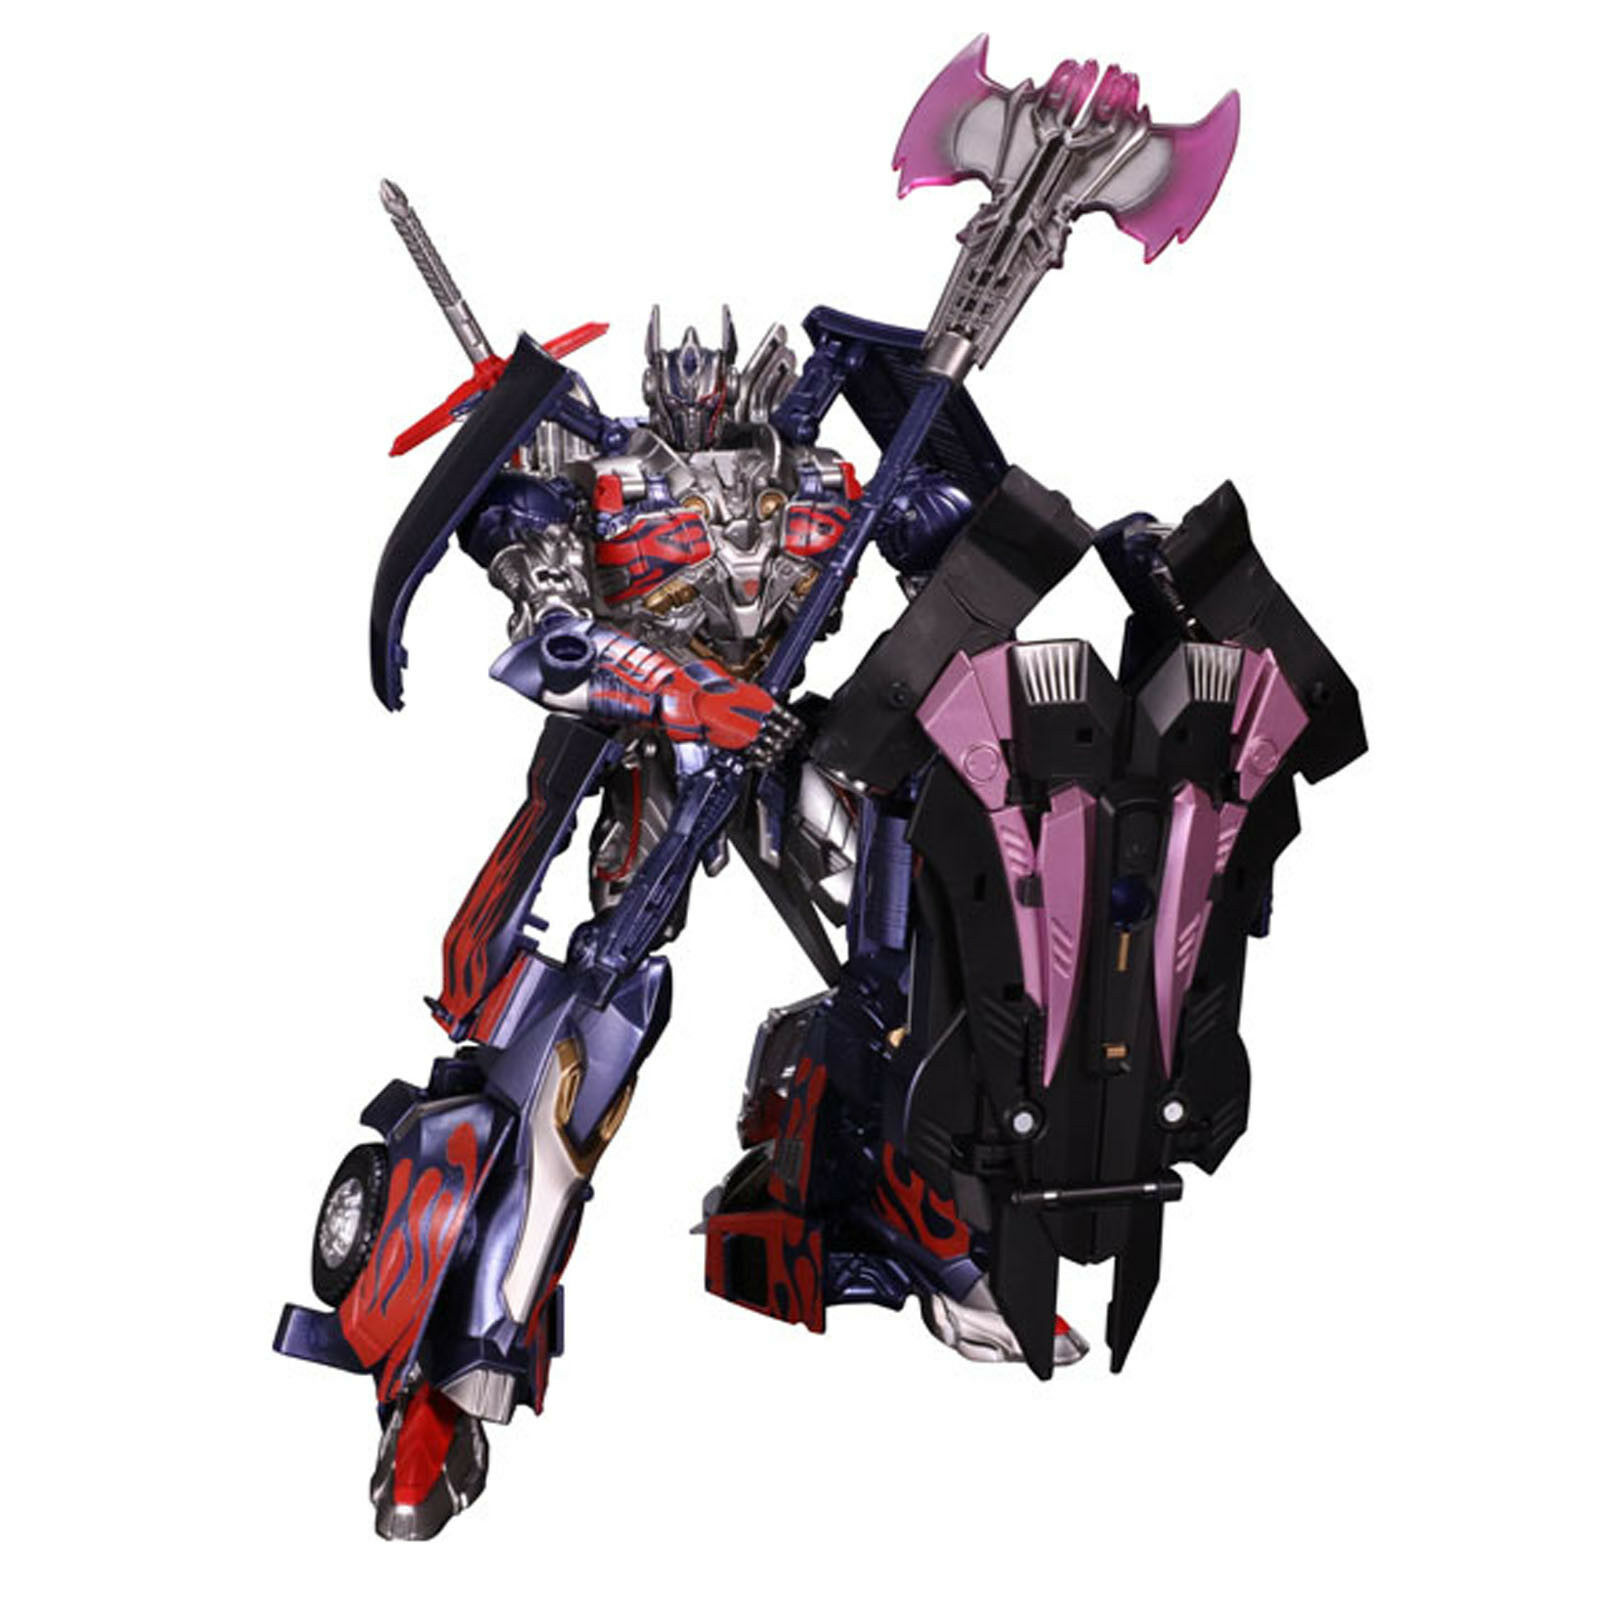 Transformers MB-20 NEMESIS PRIME MB 20 L L L Class Gift Kid Toy Robot Collection 9ad0b0